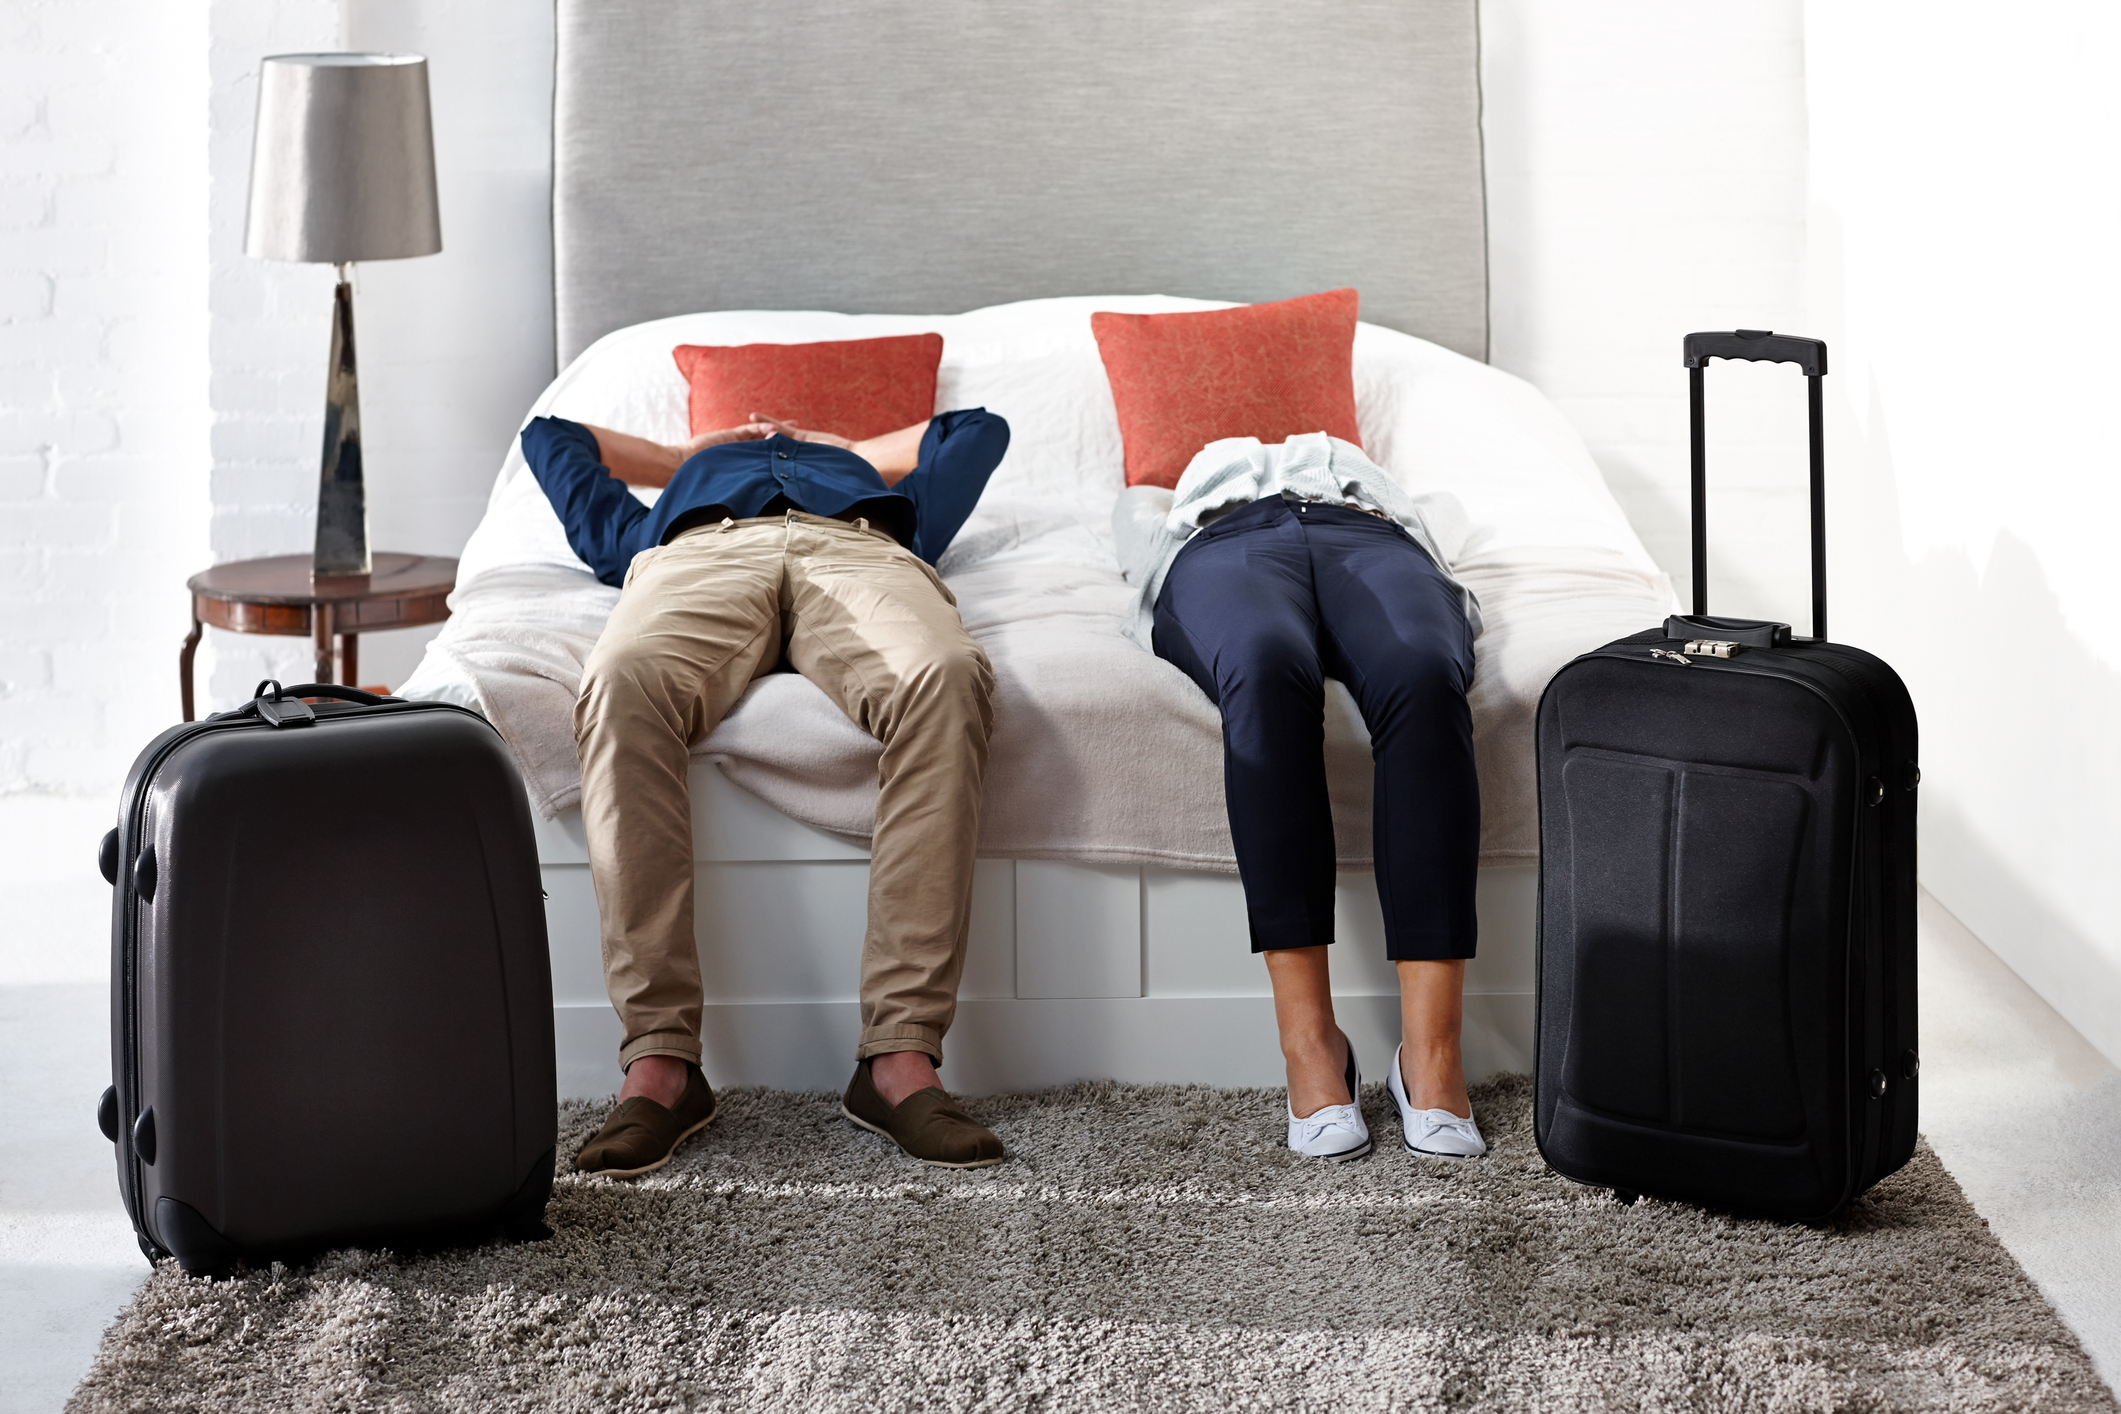 Couple lying on a hotel bed